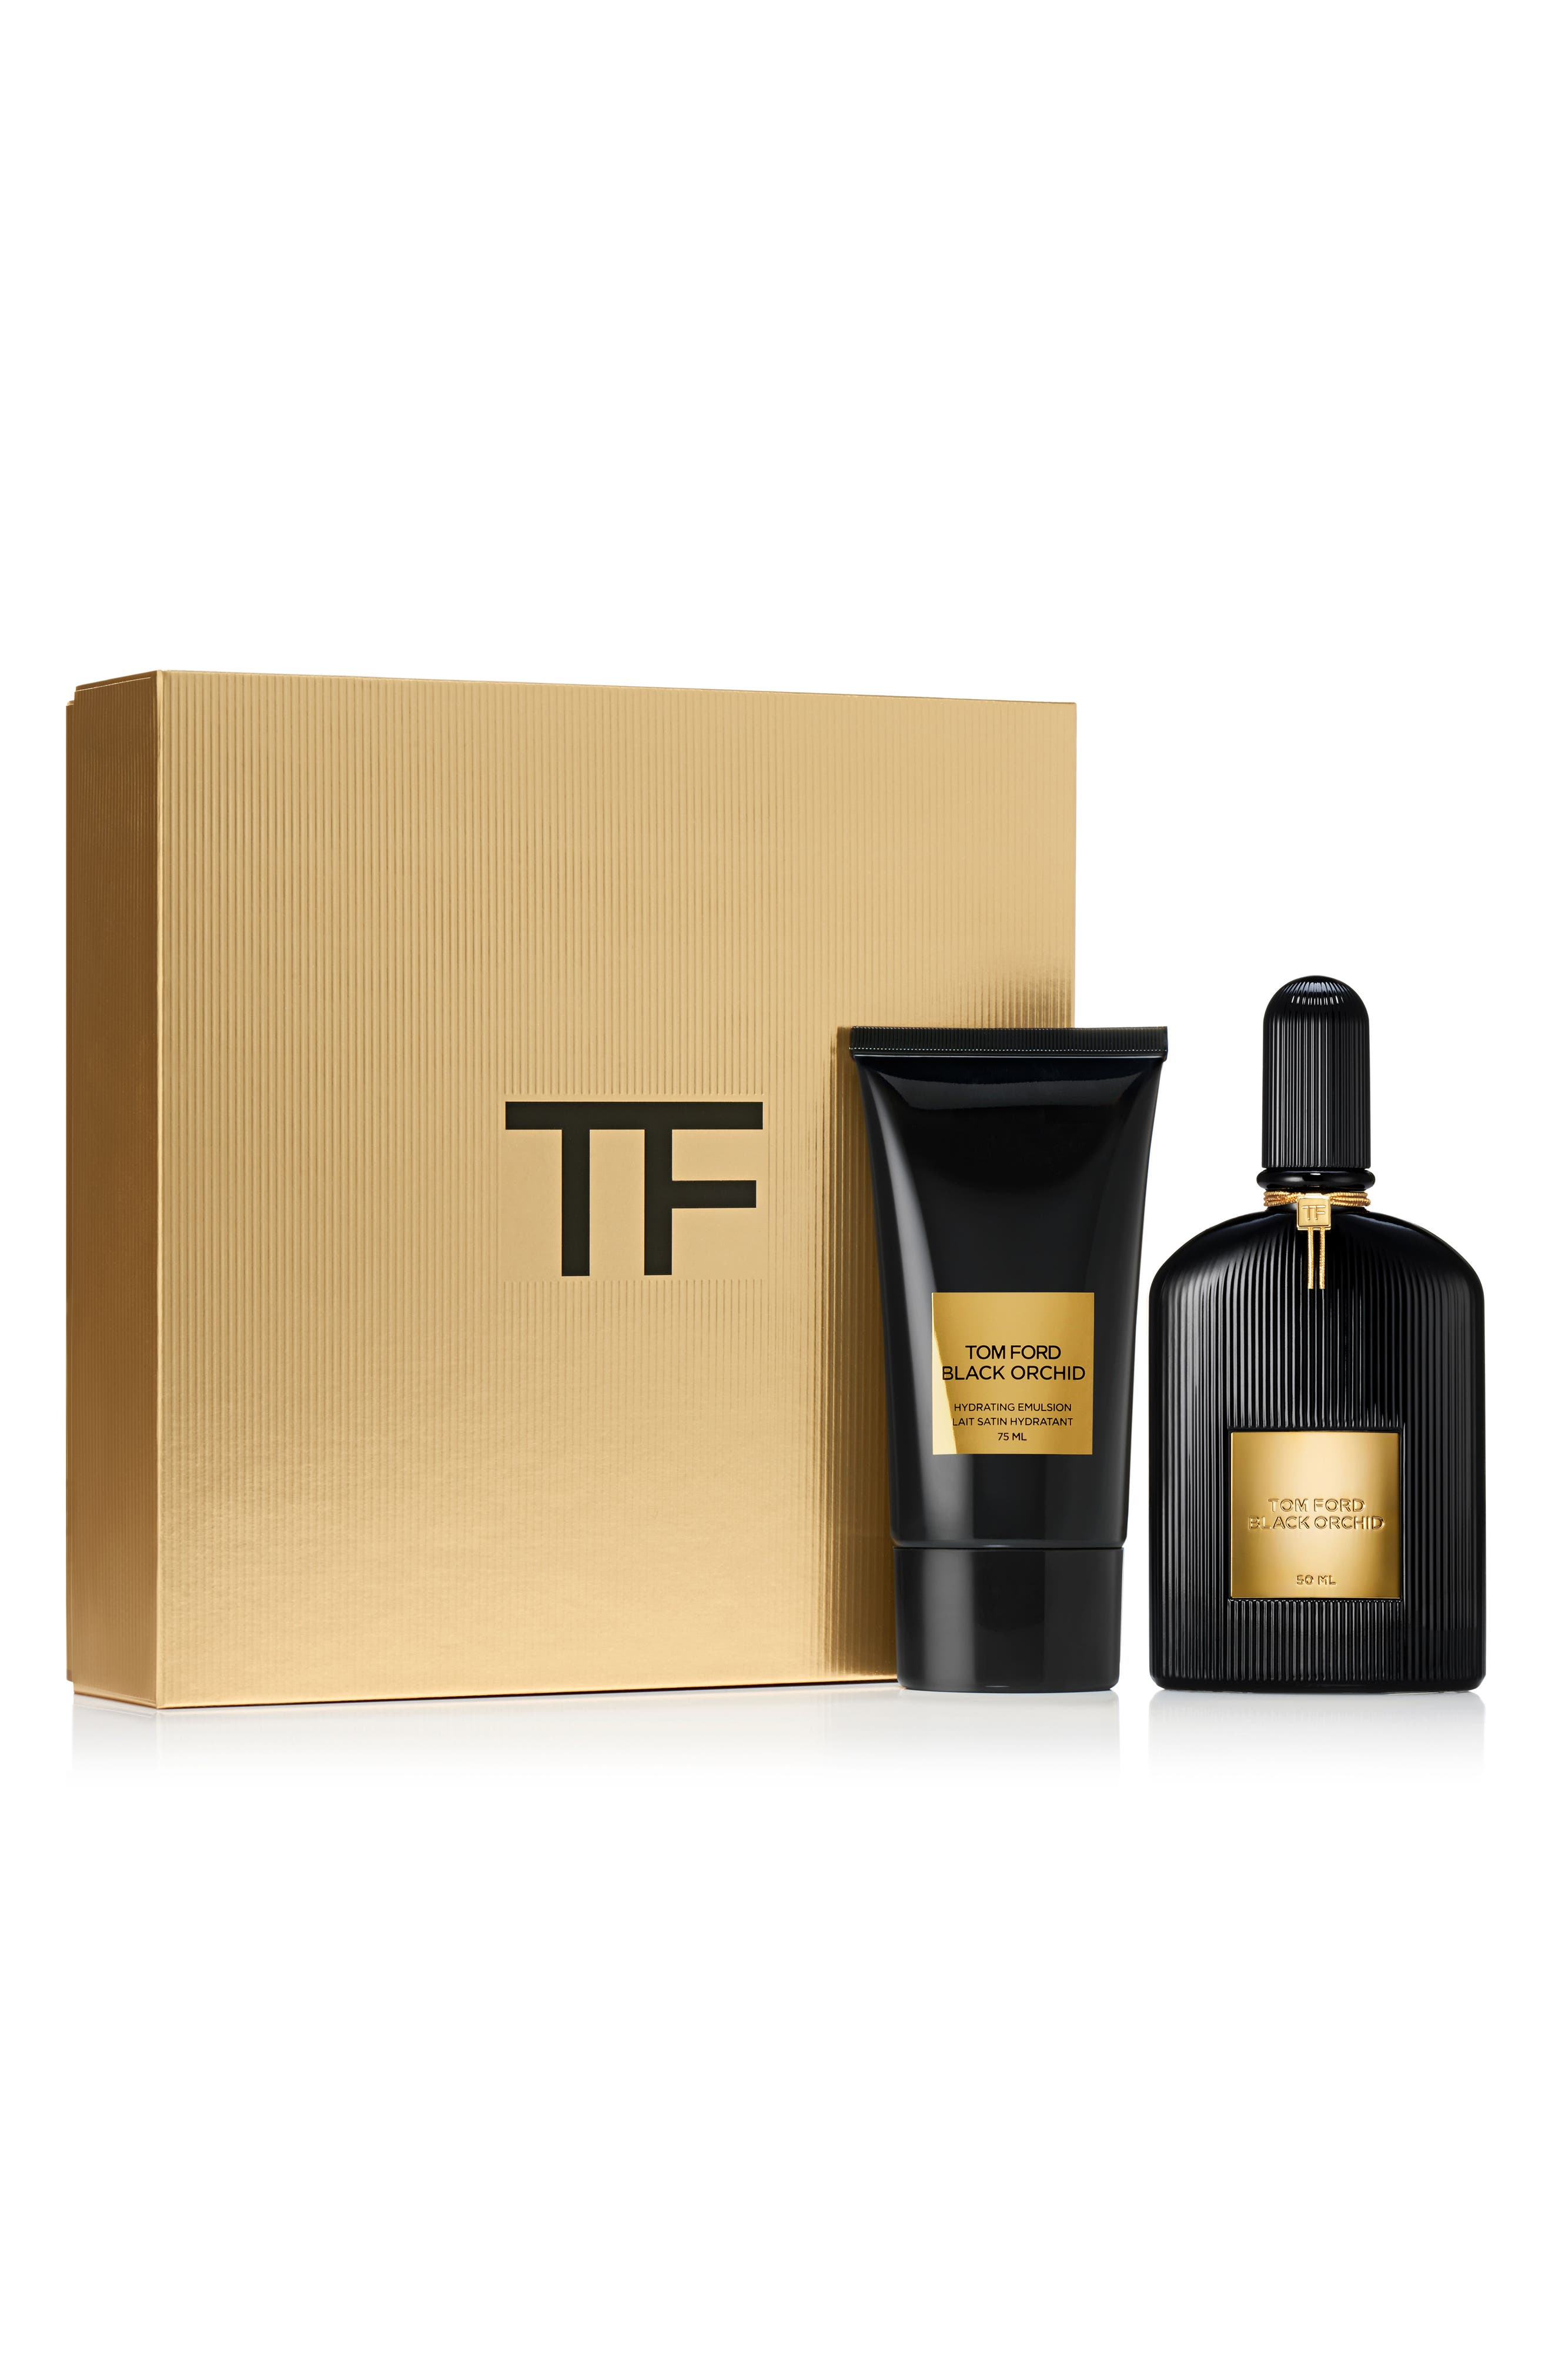 Tom Ford Black Orchid Duo